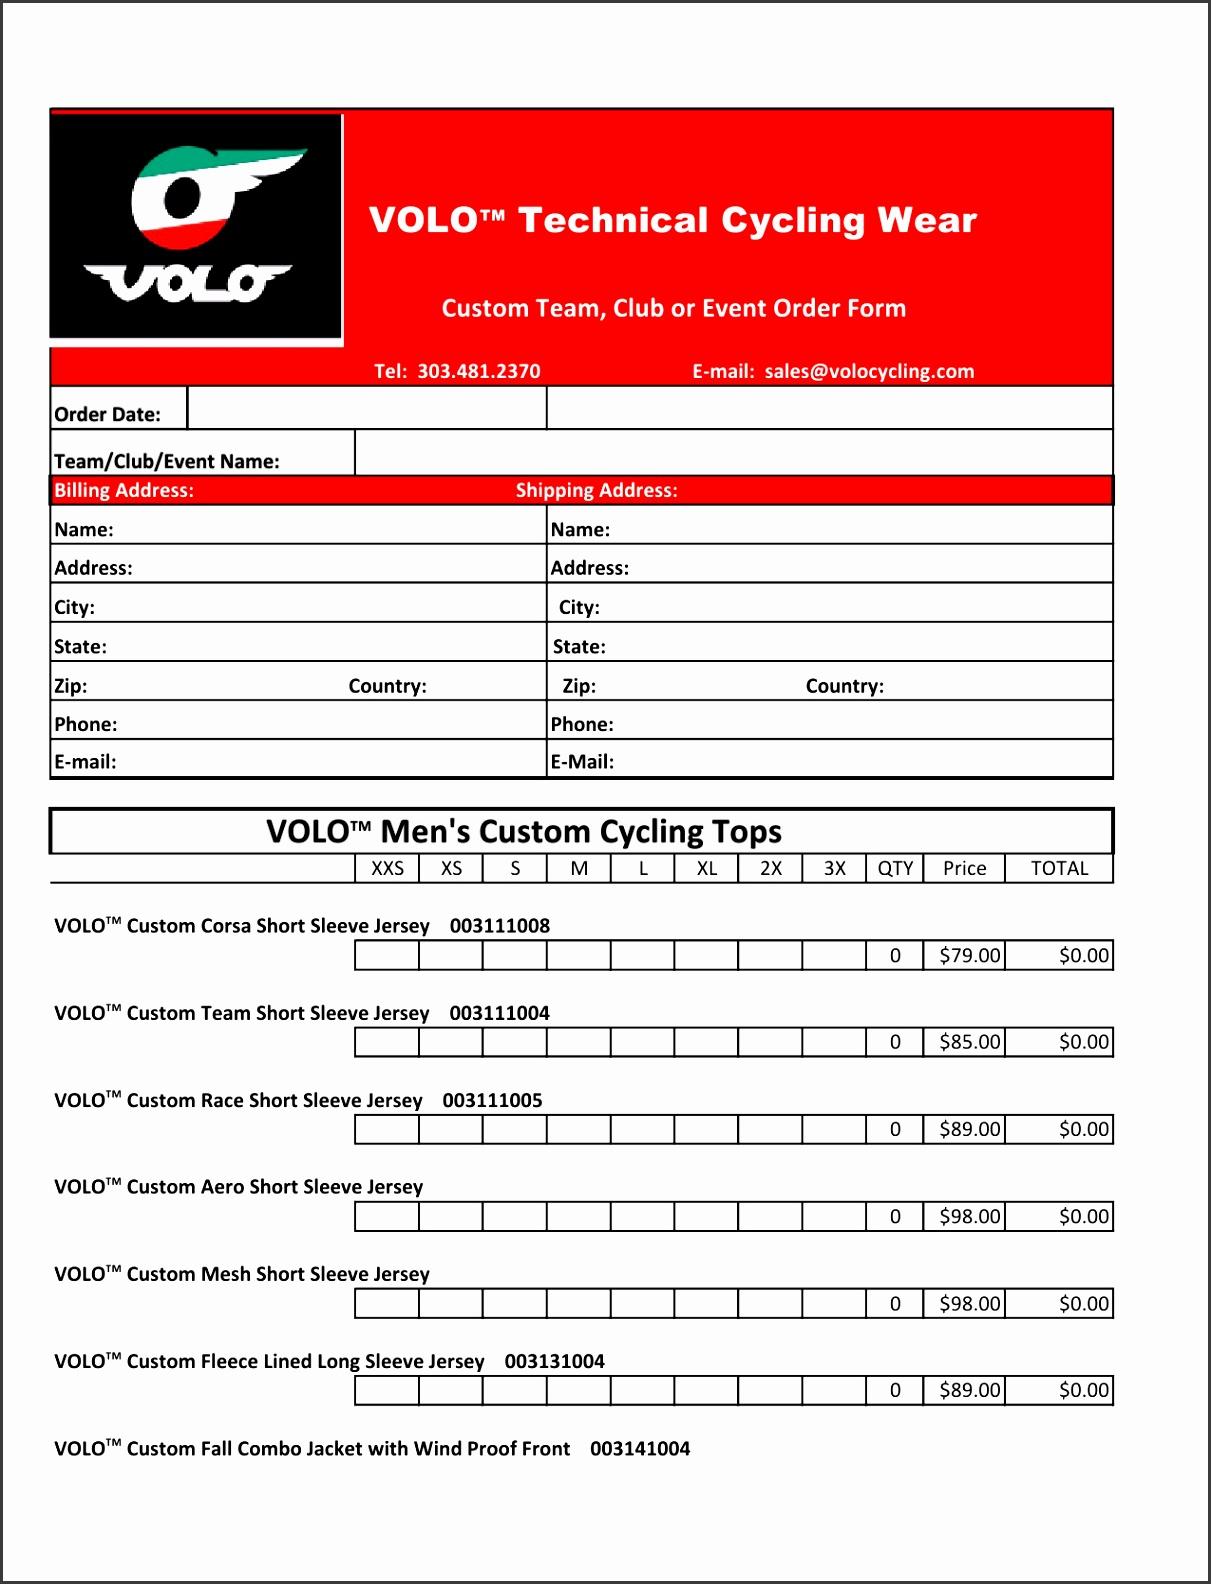 Custom Clothing Order Form Volo Cycling Forms Template Image Custom Order Forms Form Full